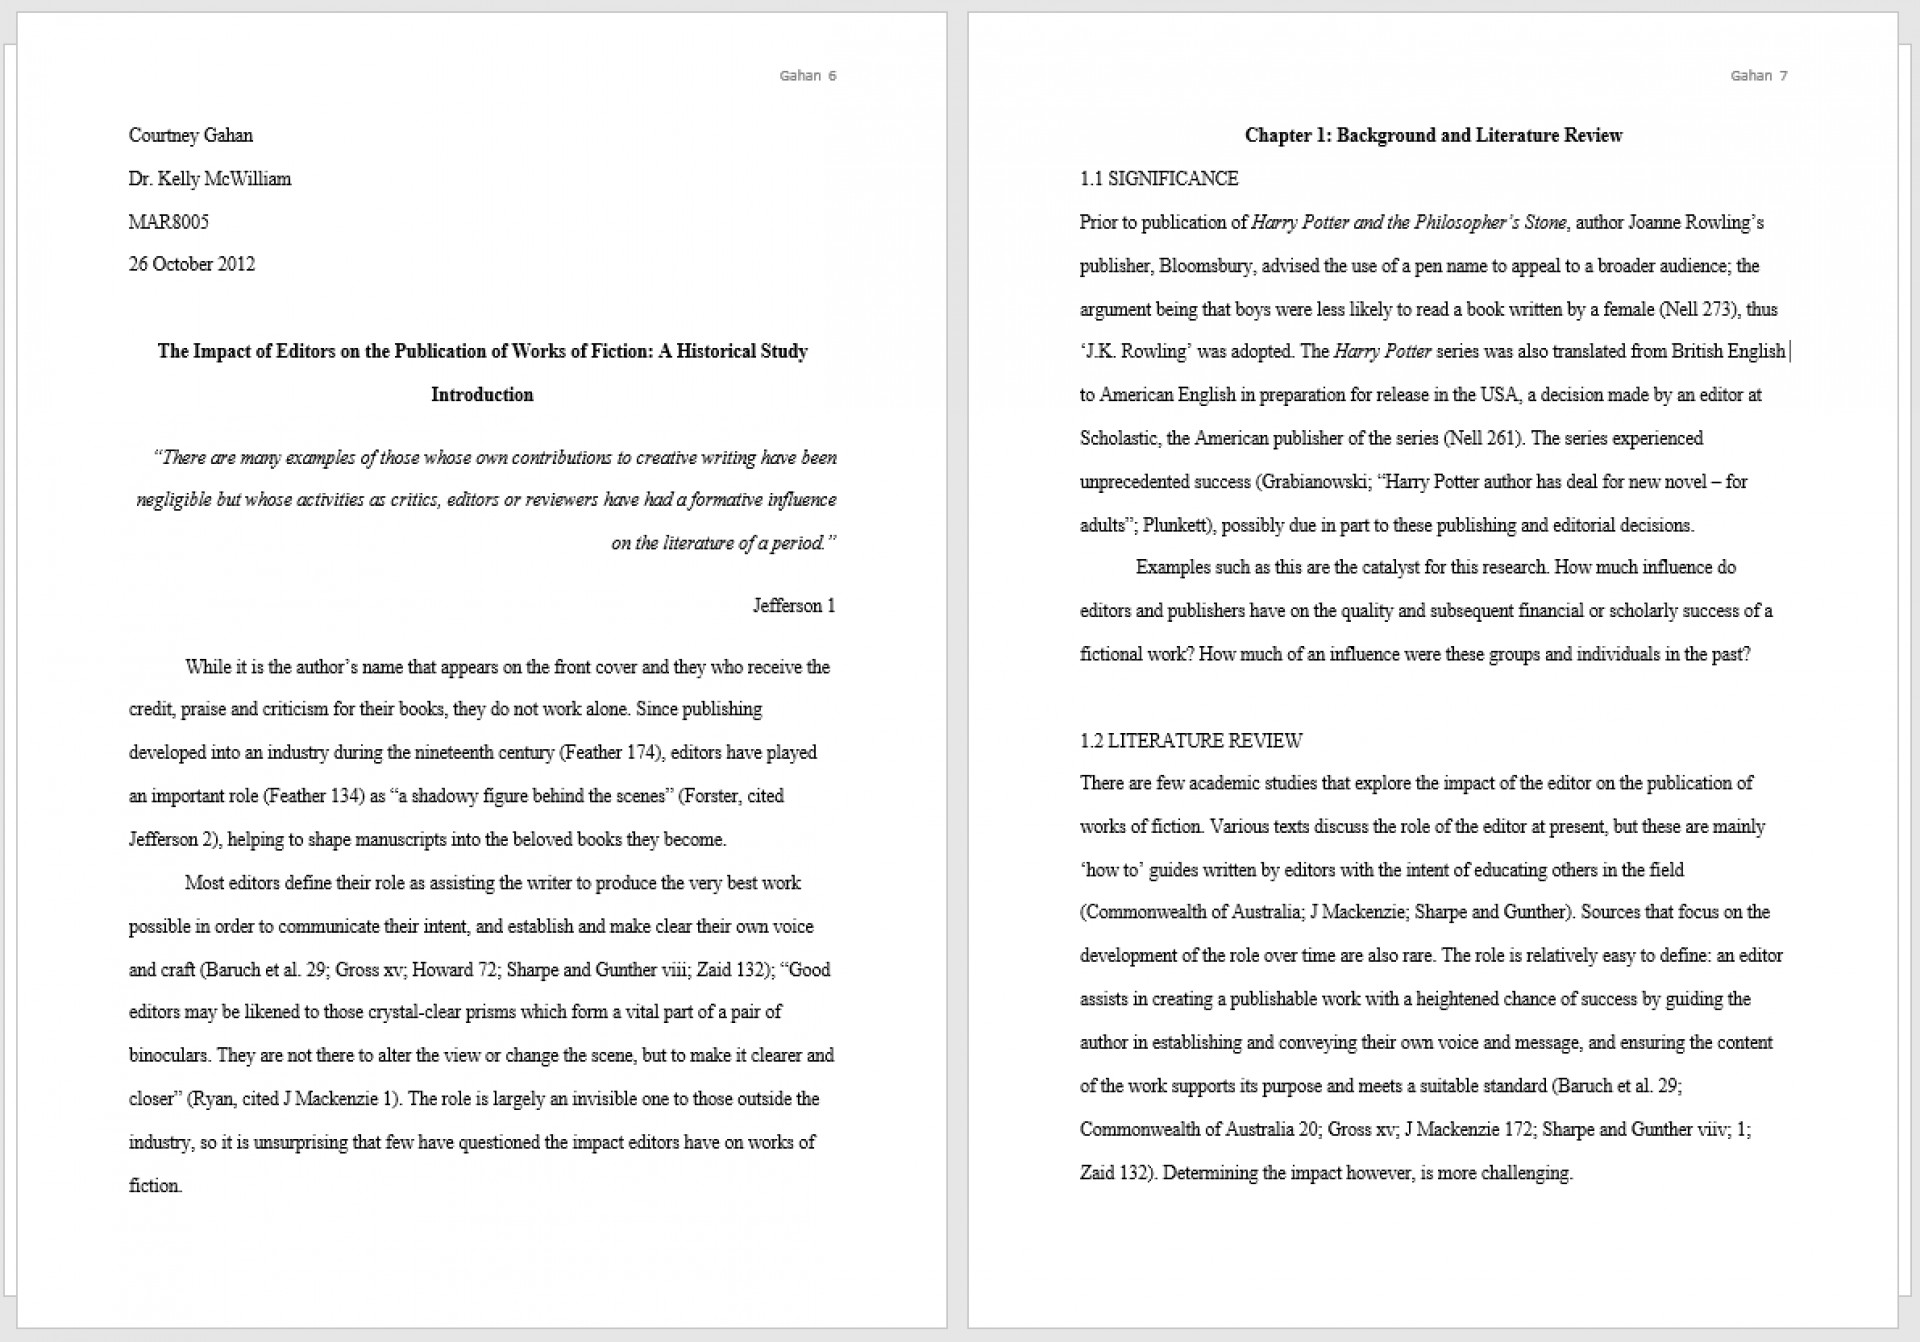 011 Thesis Two Pages Example Full Mla Magnificent Essay Format 2018 Style Title Page 1920